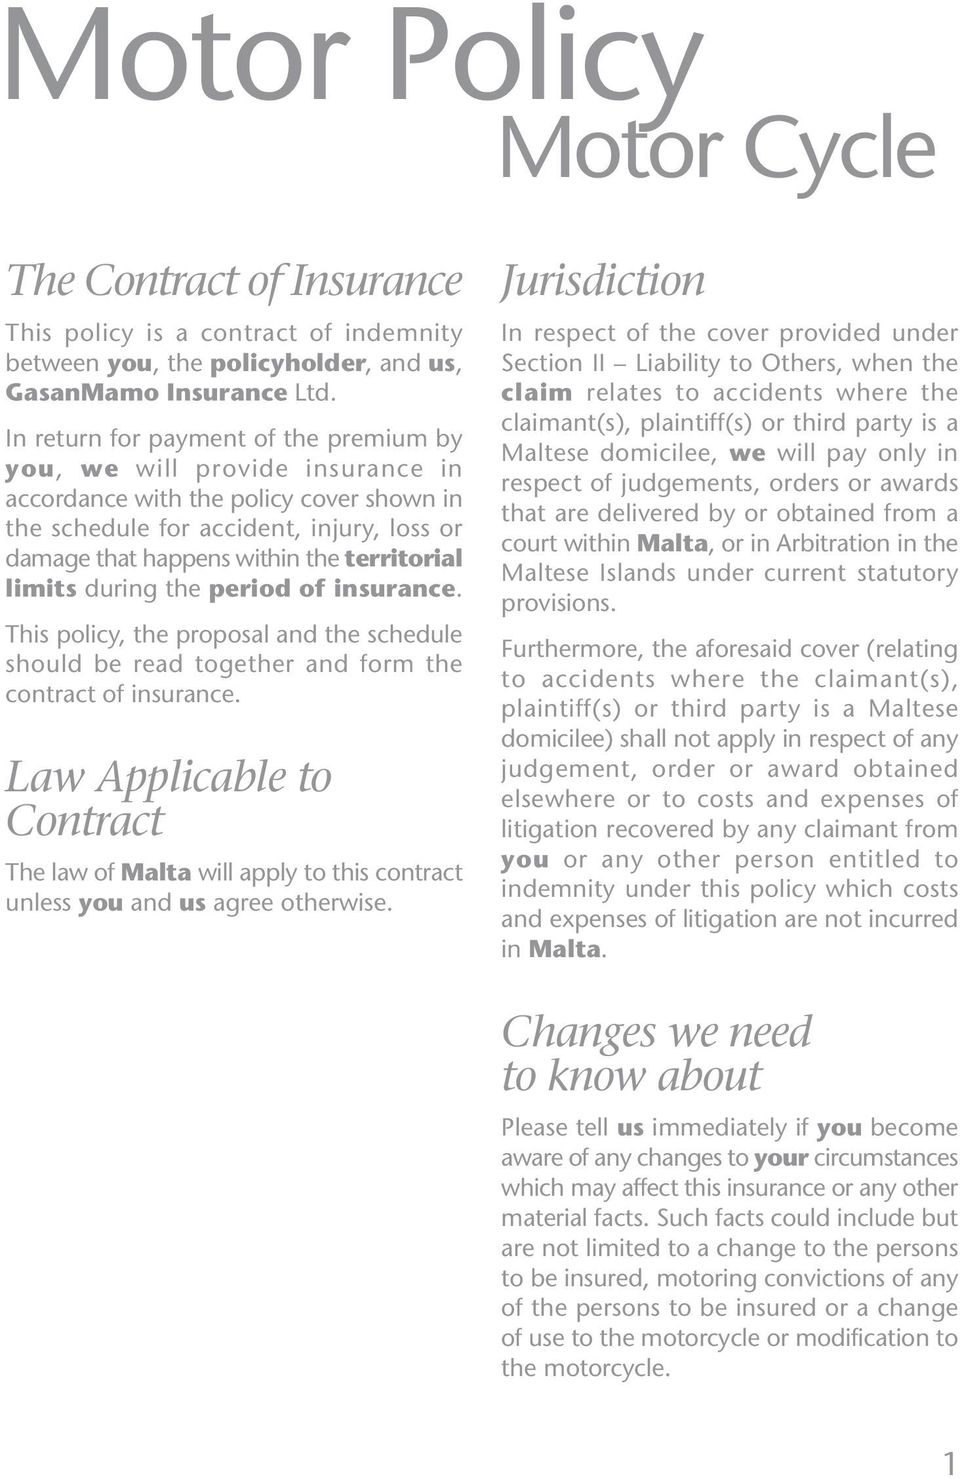 territorial limits during the period of insurance. This policy, the proposal and the schedule should be read together and form the contract of insurance.